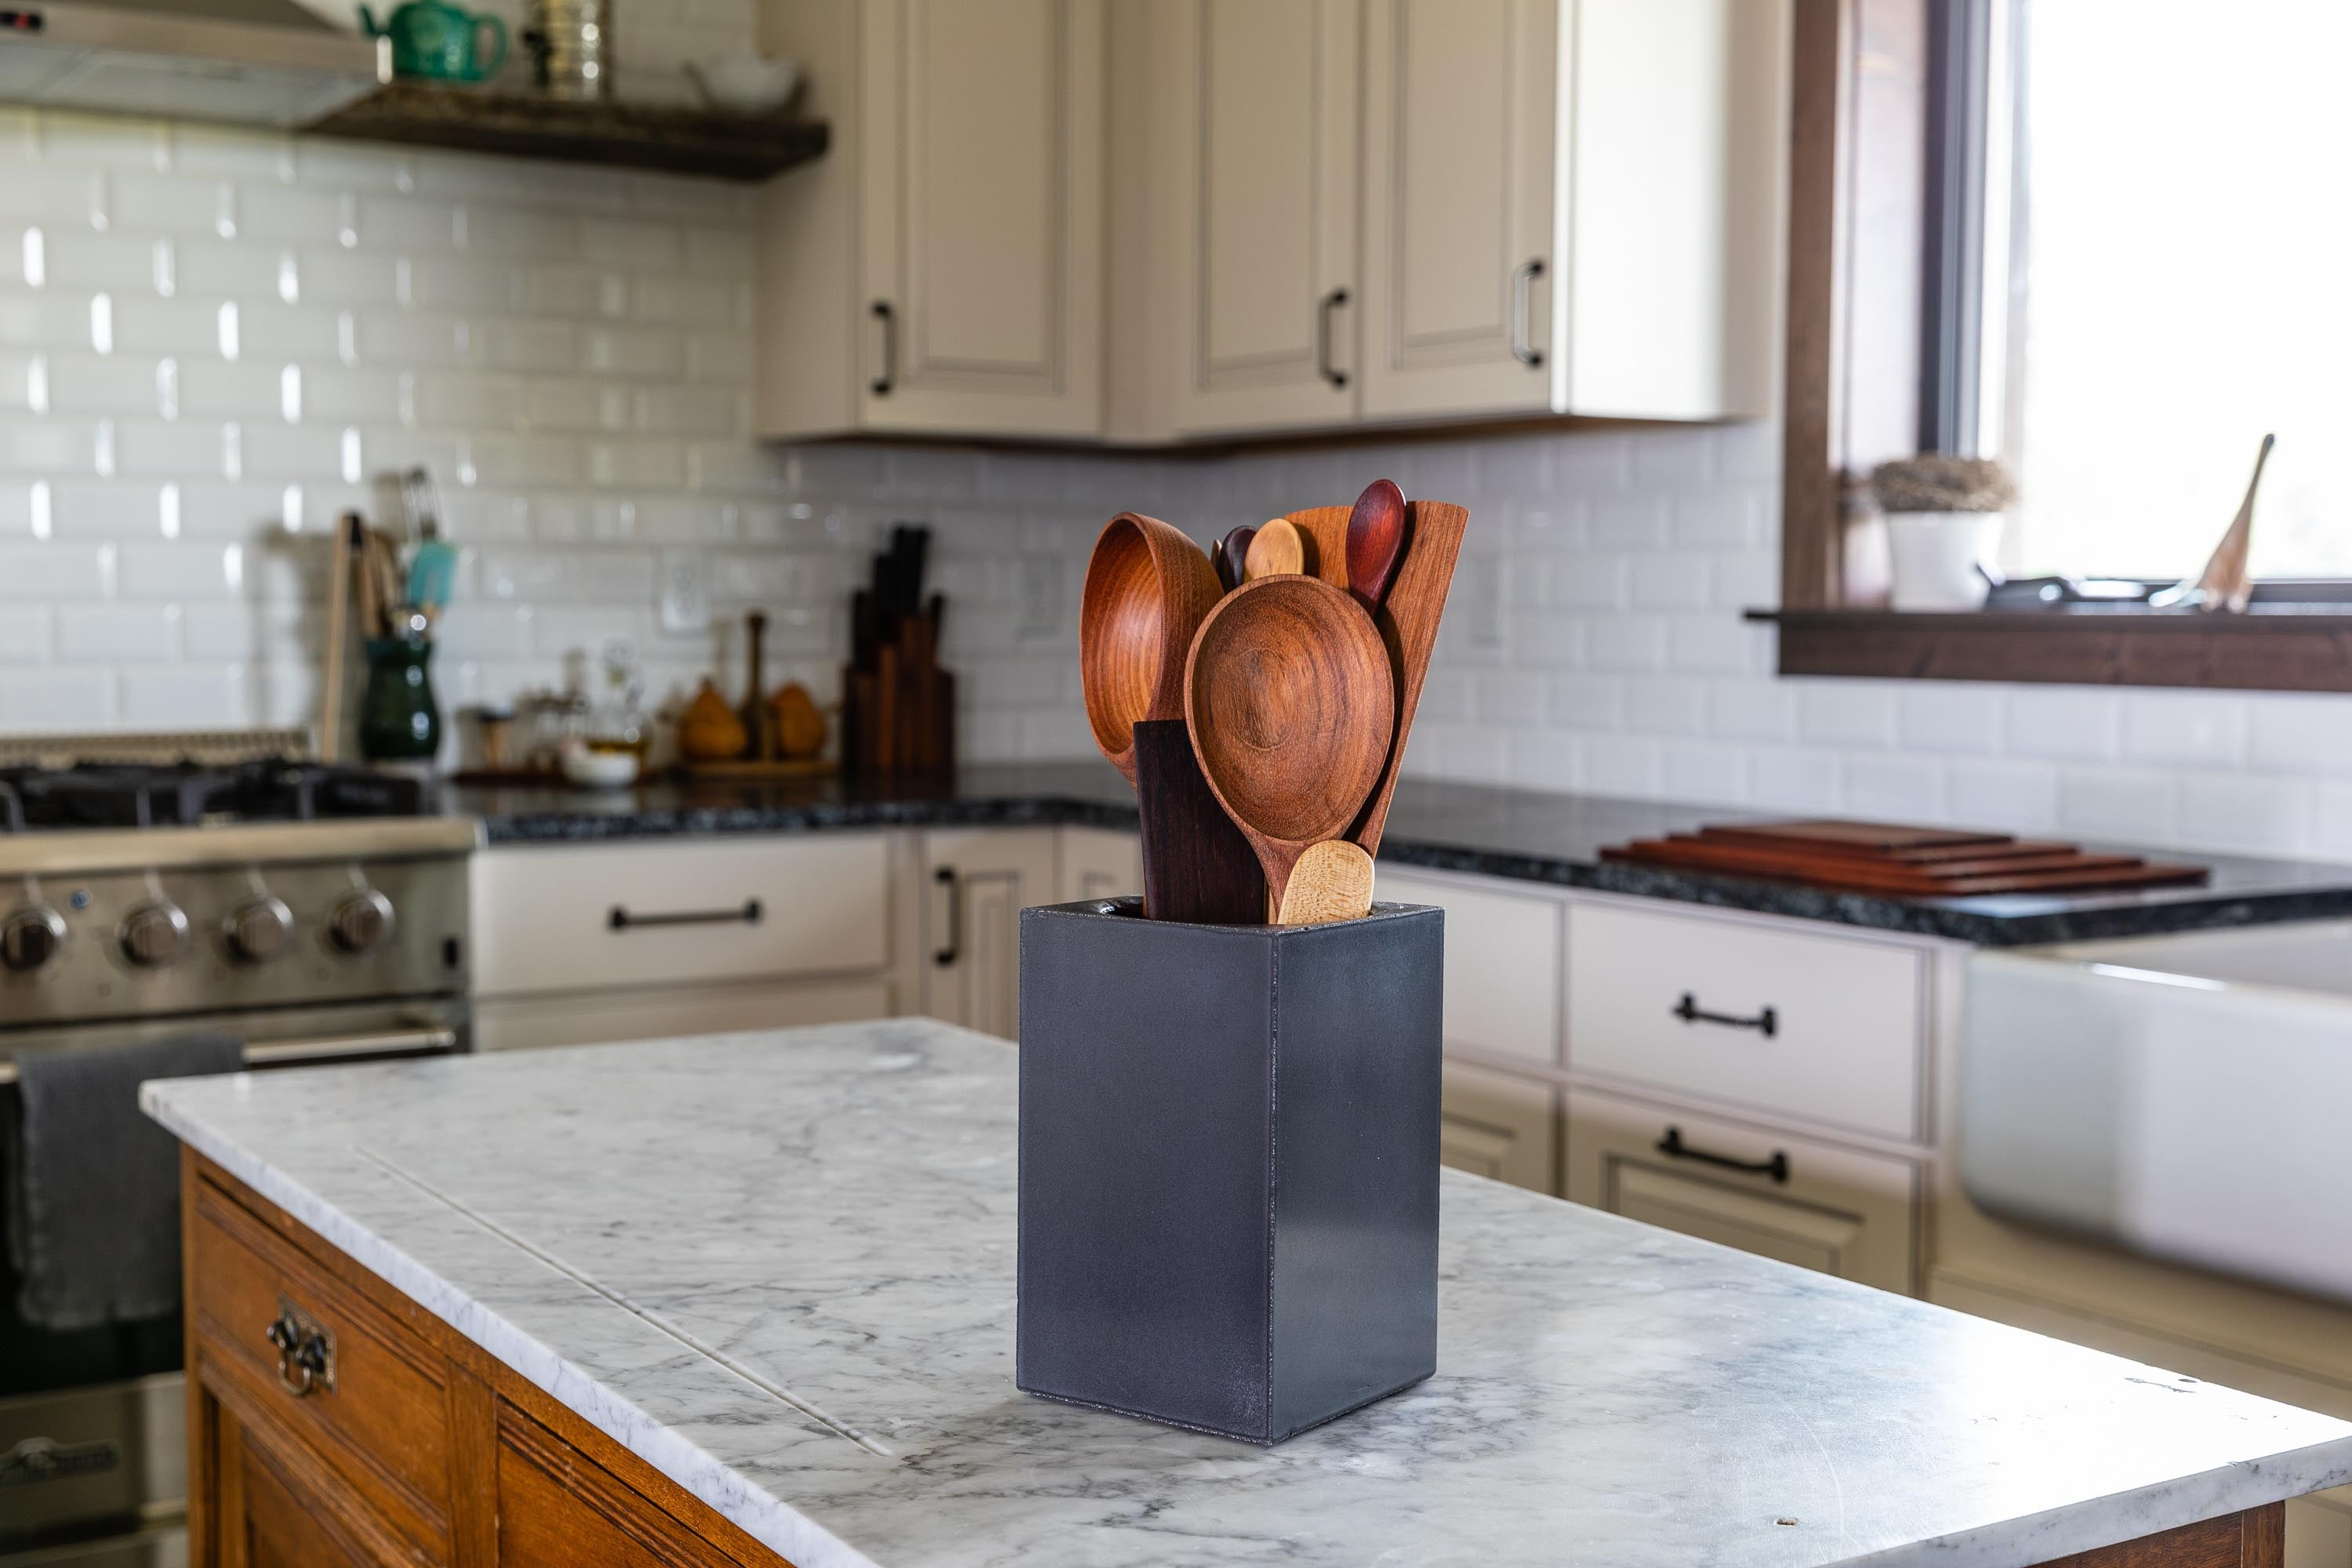 Beautiful kitchen utensils made from wood